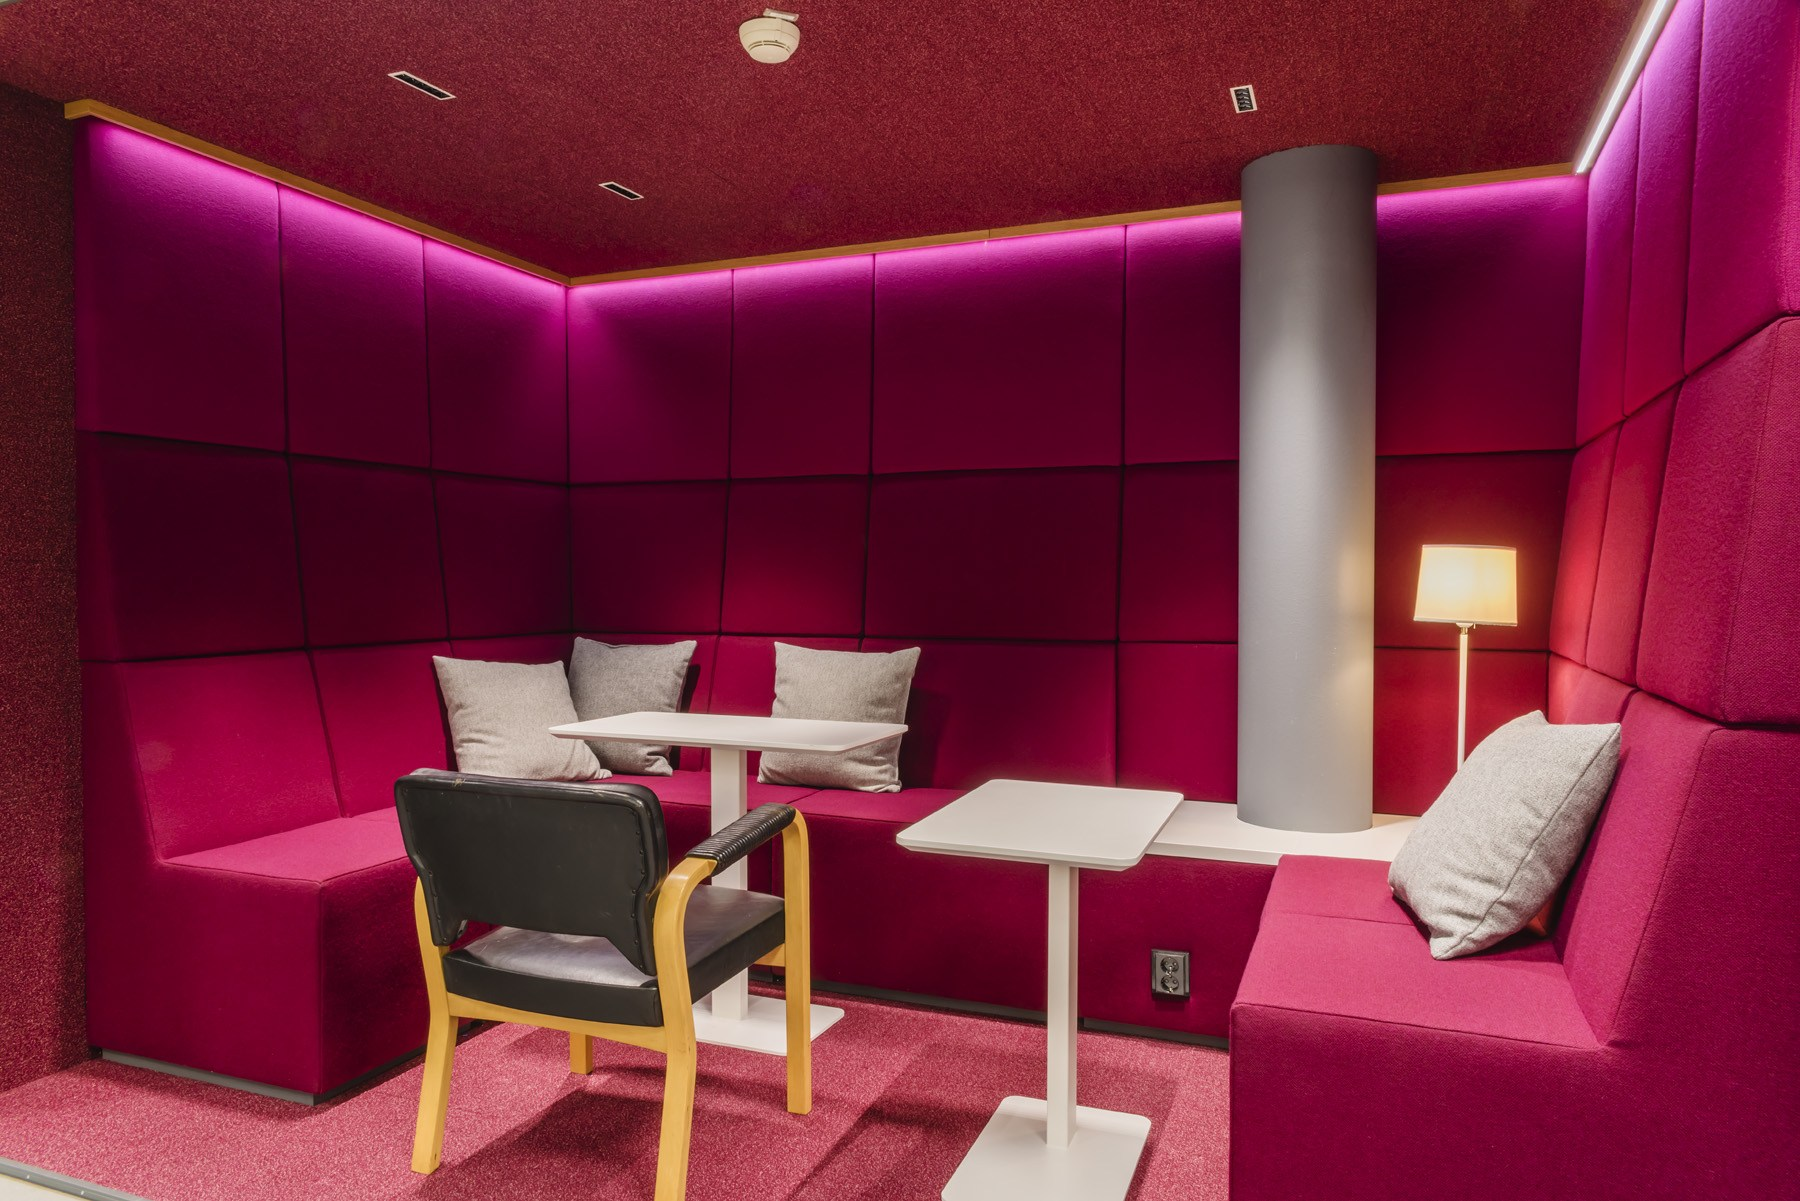 Acoustic study: INTO furniture reduces office noise pollution - Nordea